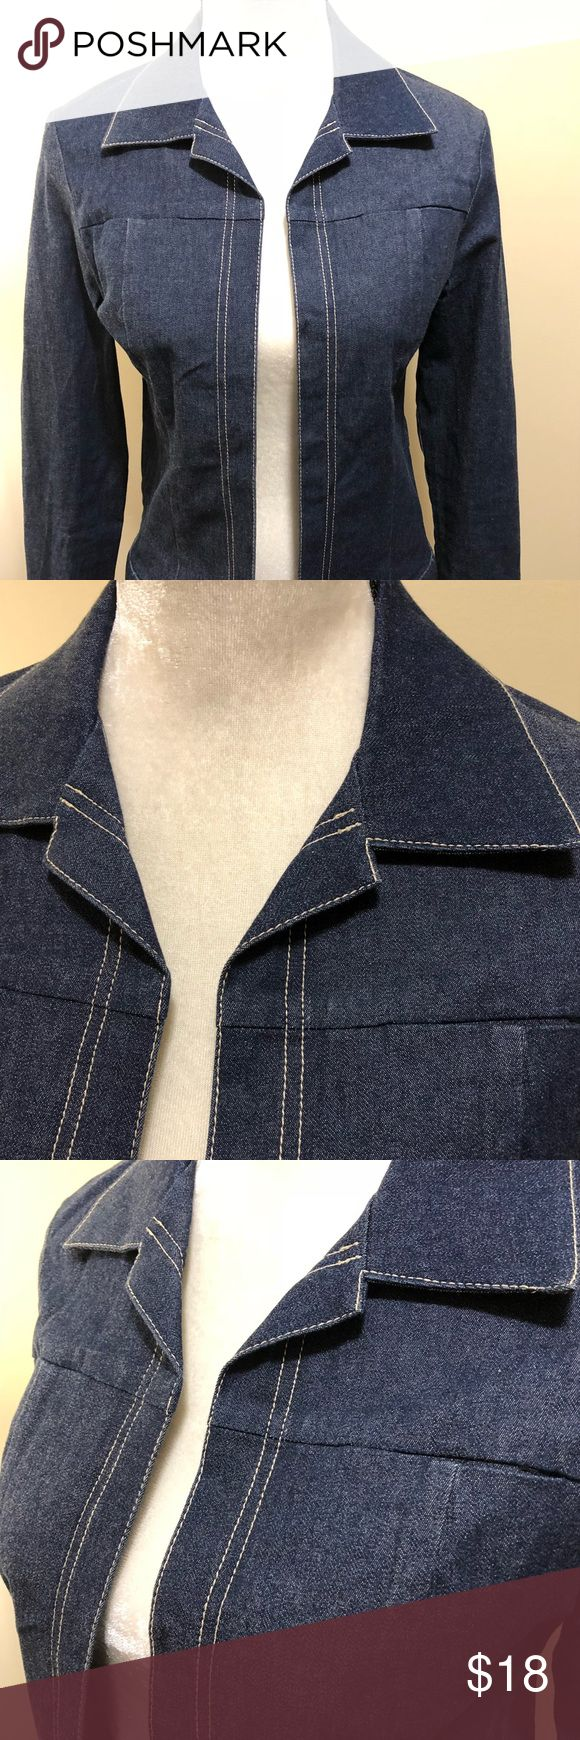 "French Connection Open Front Denim Jacket SZ SM Pre owed. No flaws Shoulder 15.5 Sleeve 25"" Back Length 21.5"" French Connection Jackets & Coats Jean Jackets"